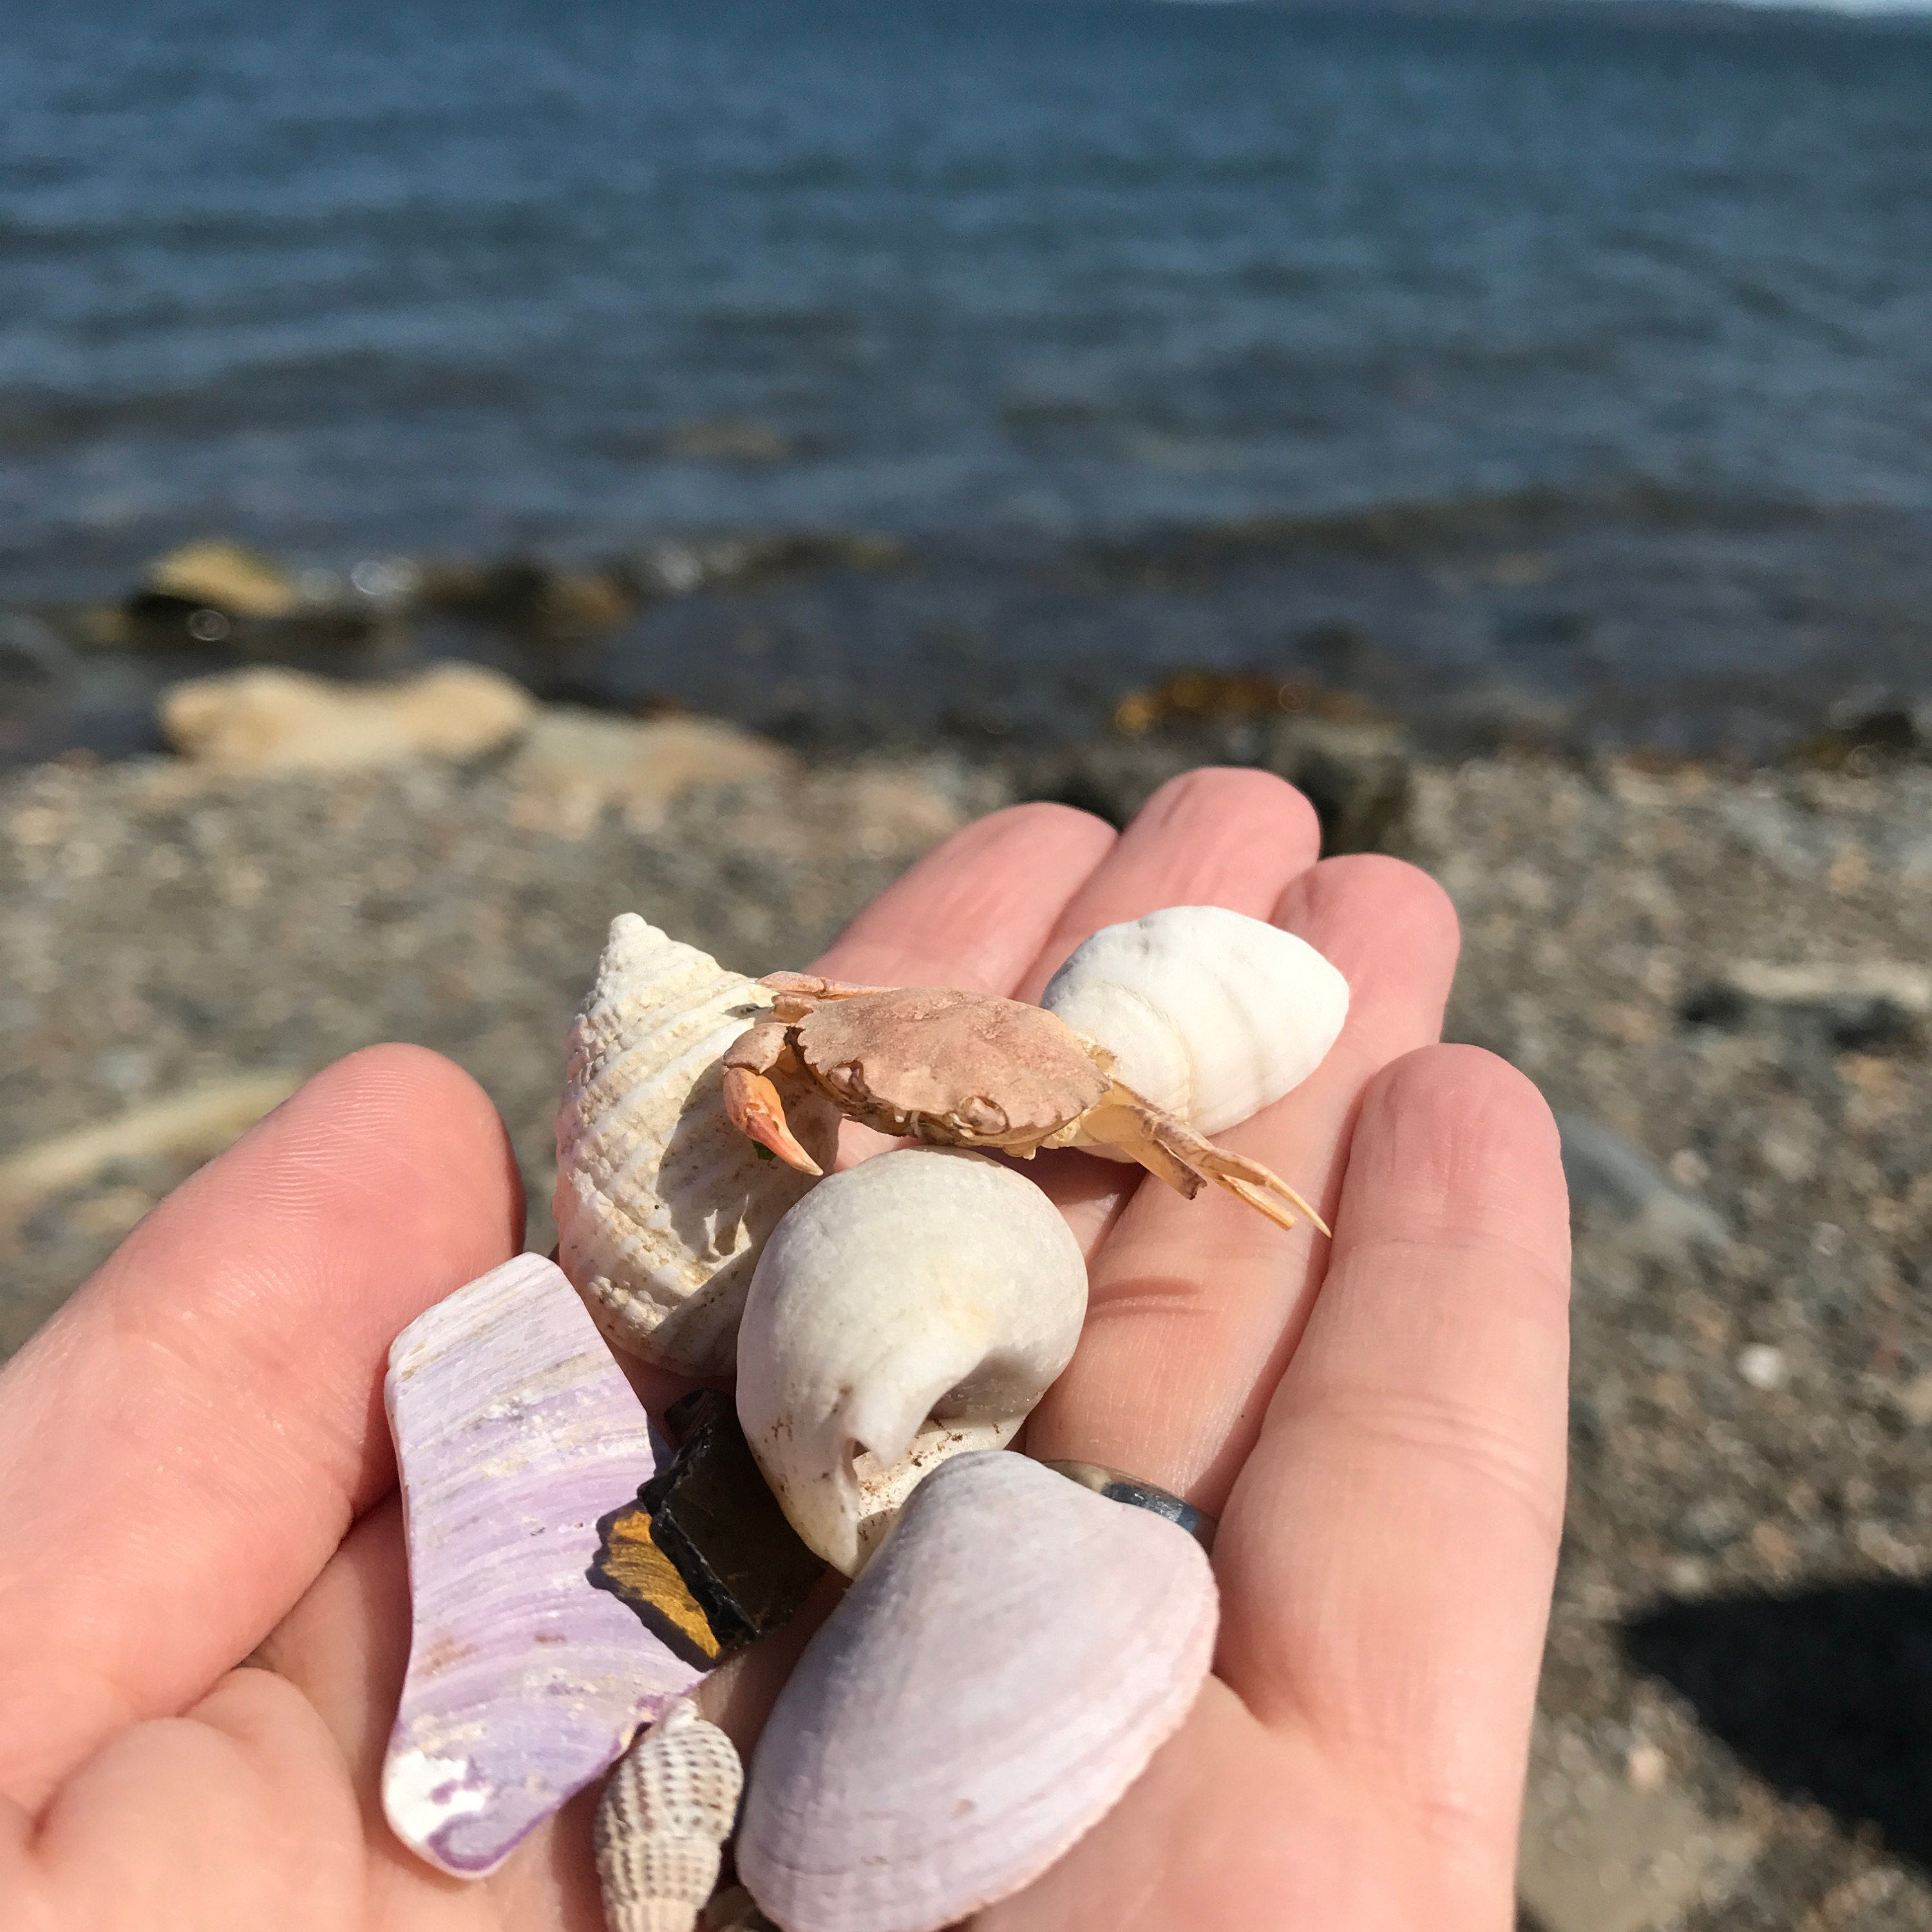 Beach treasures gathered in Digby, Nova Scotia